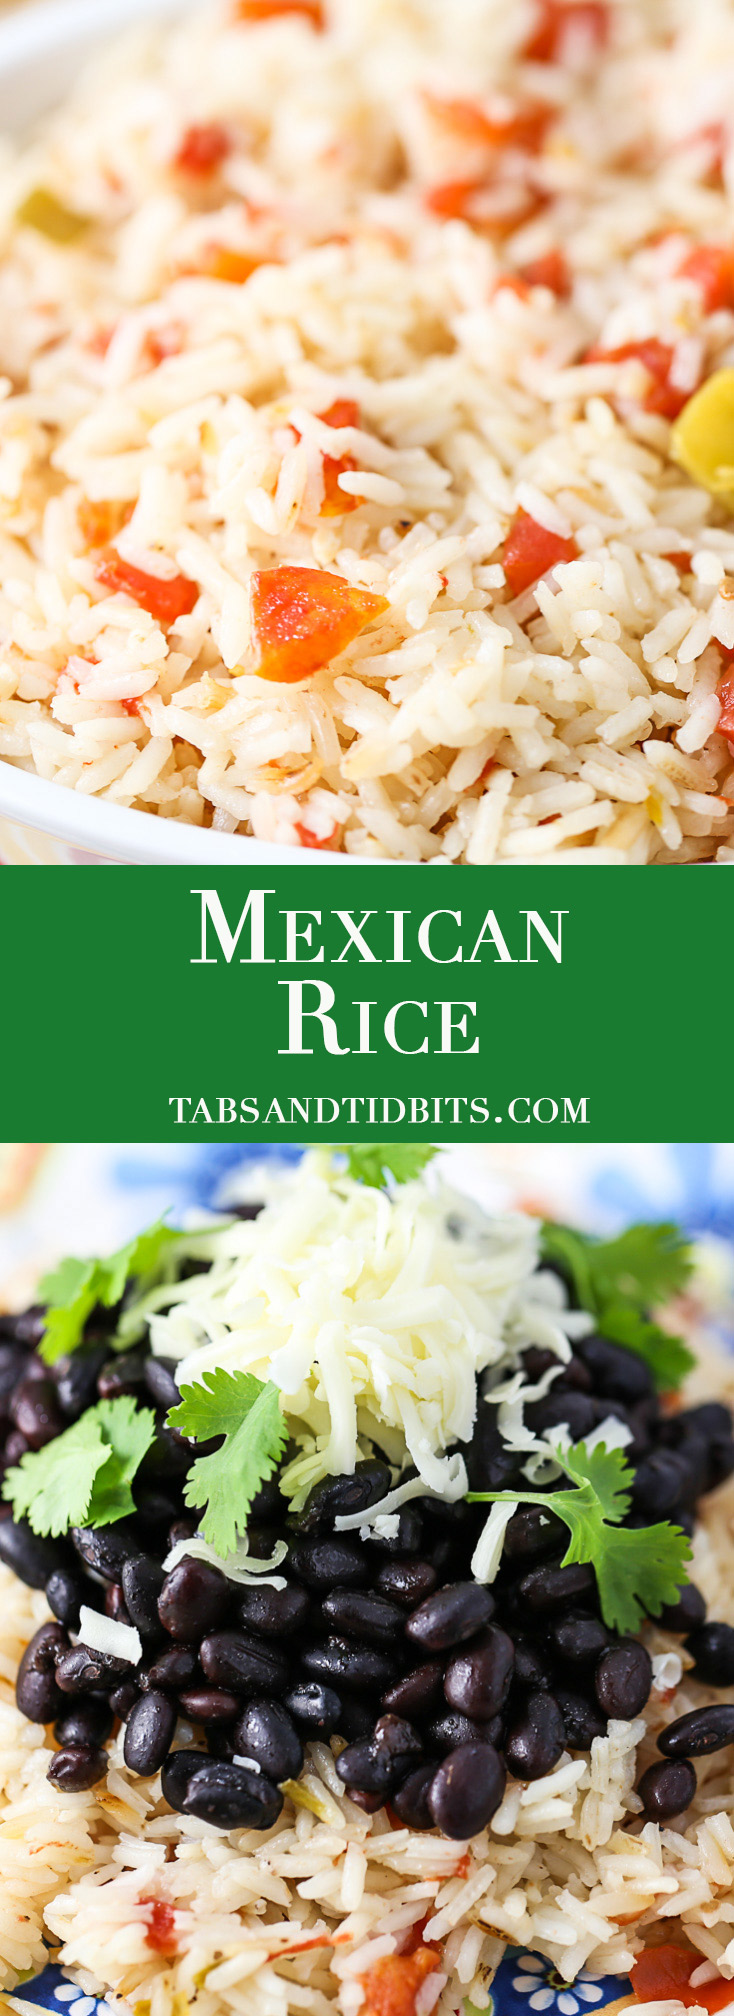 Mexican Rice - Toasted rice cooked with tomatoes, green chilies, garlic, and vegetable broth!